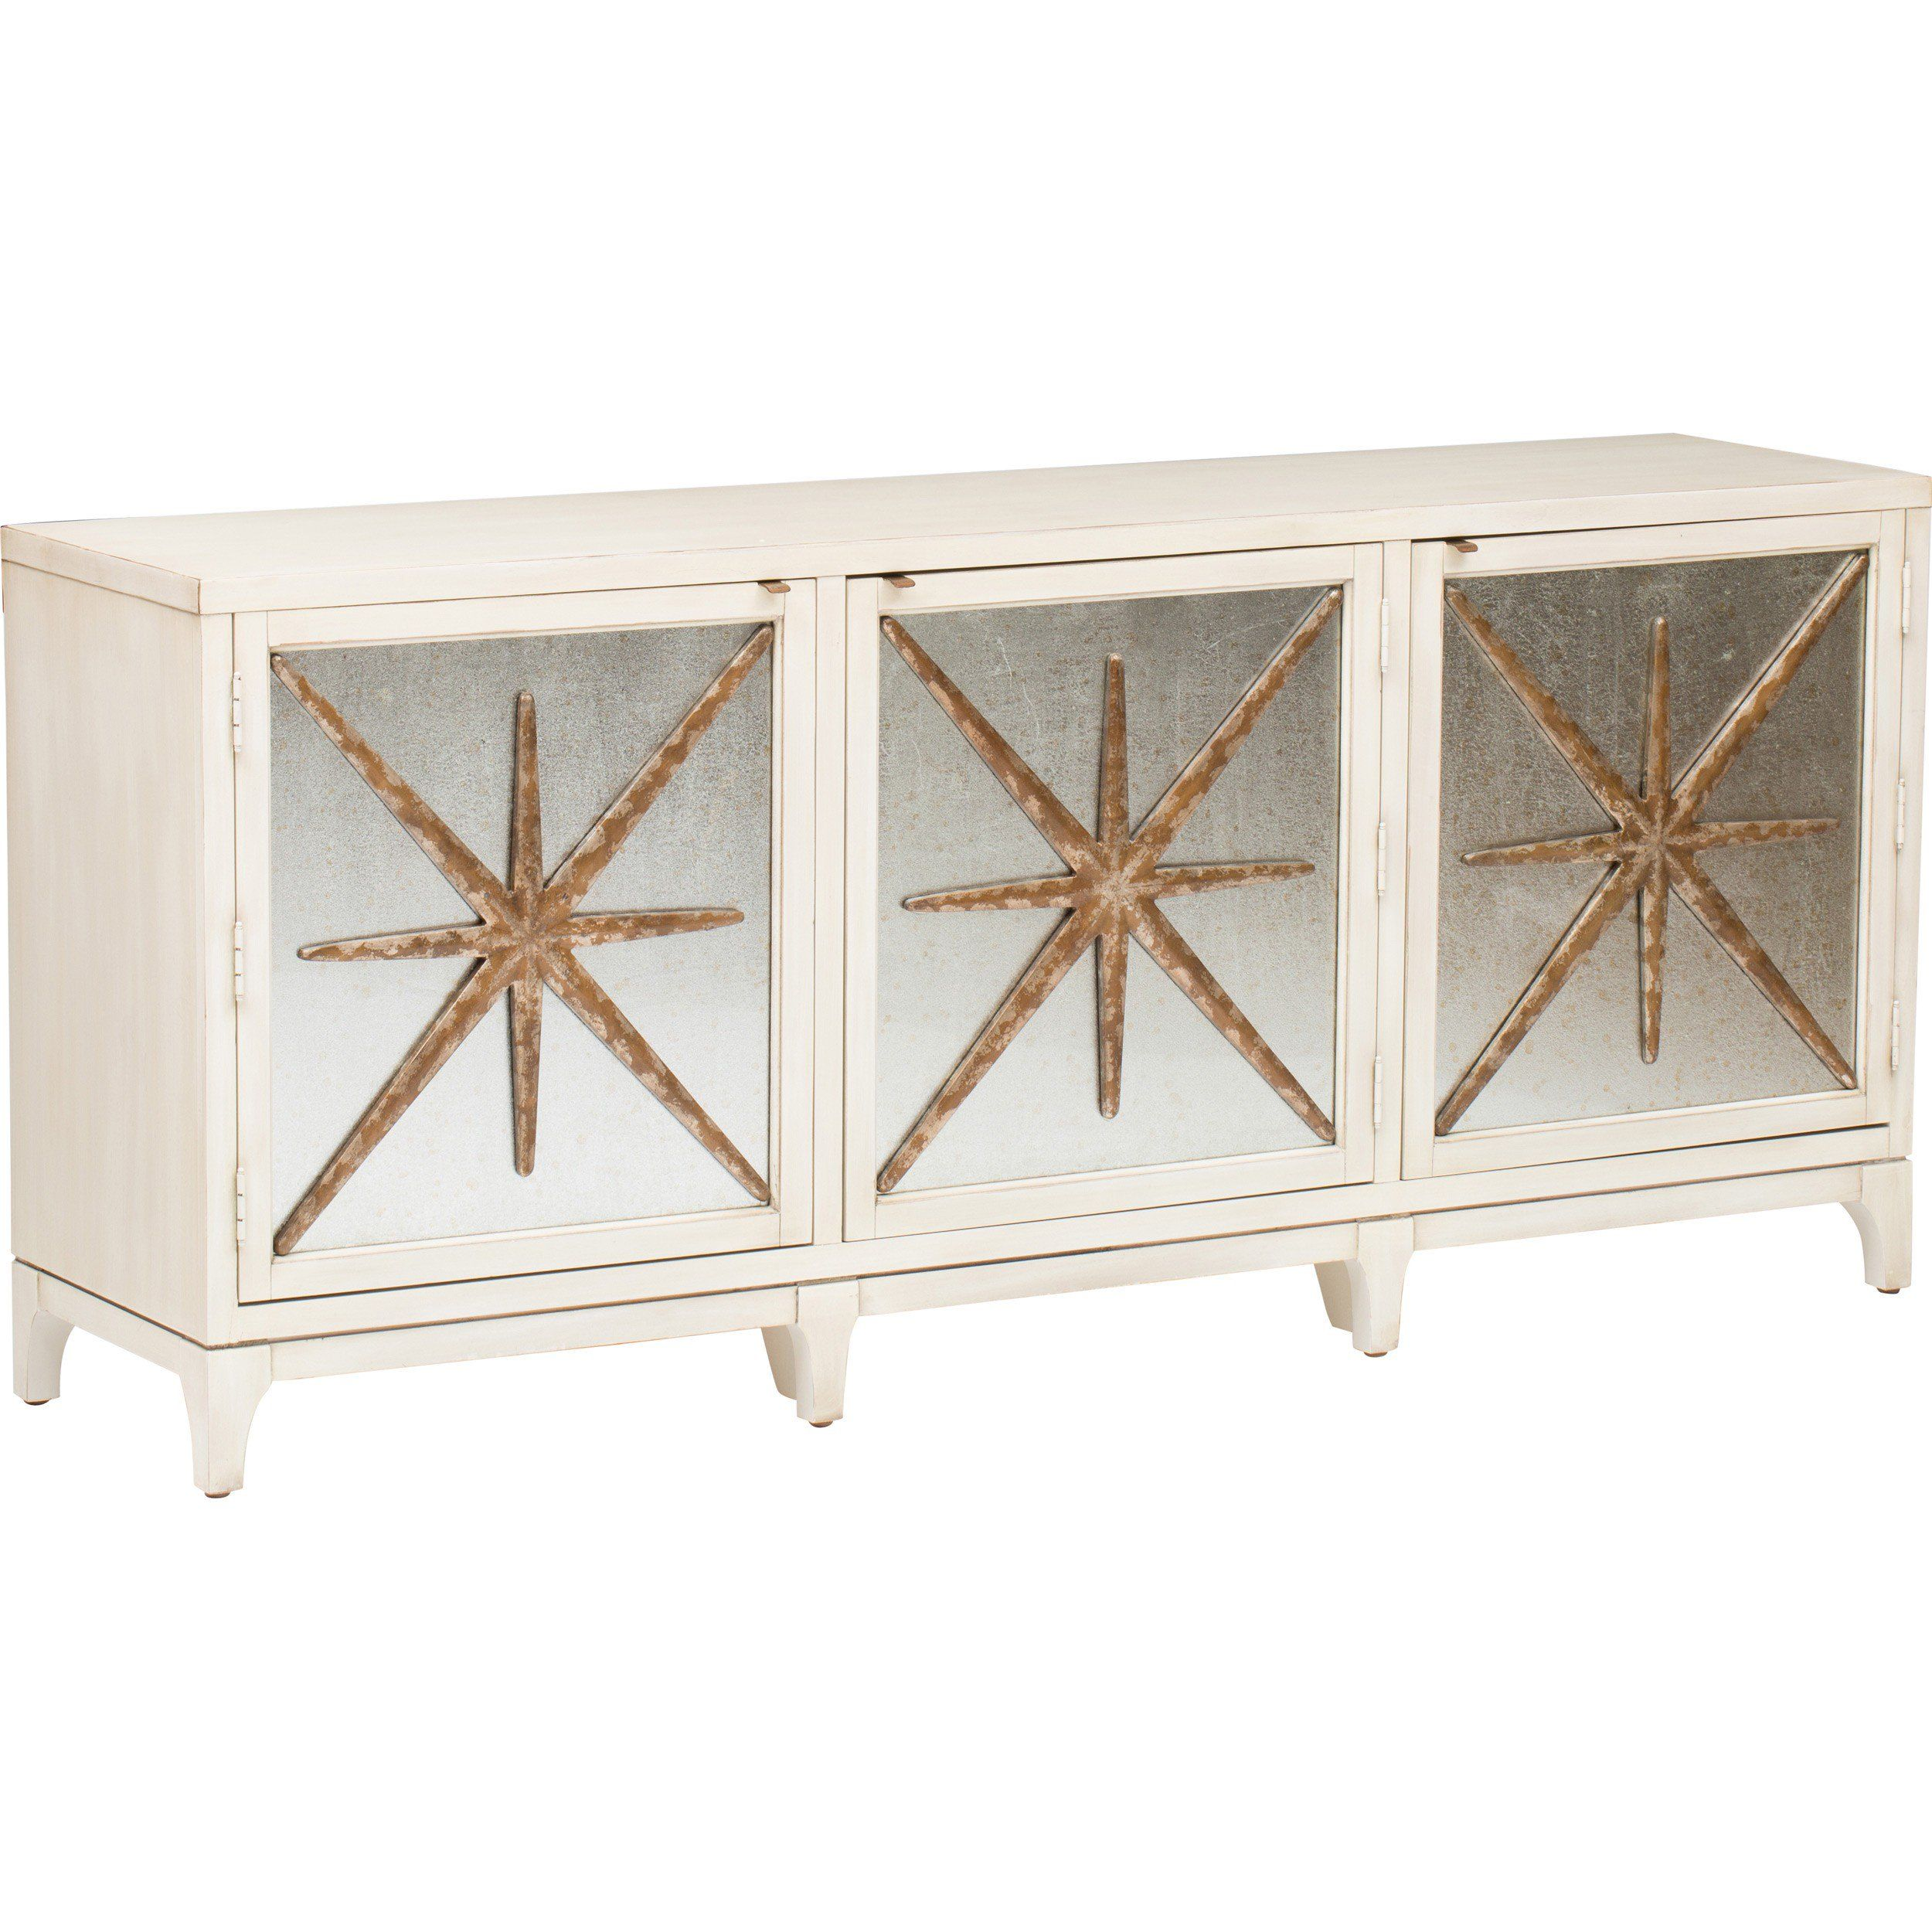 Glass console table decor  Melange Star Power Console  For the Home  Pinterest  Consoles